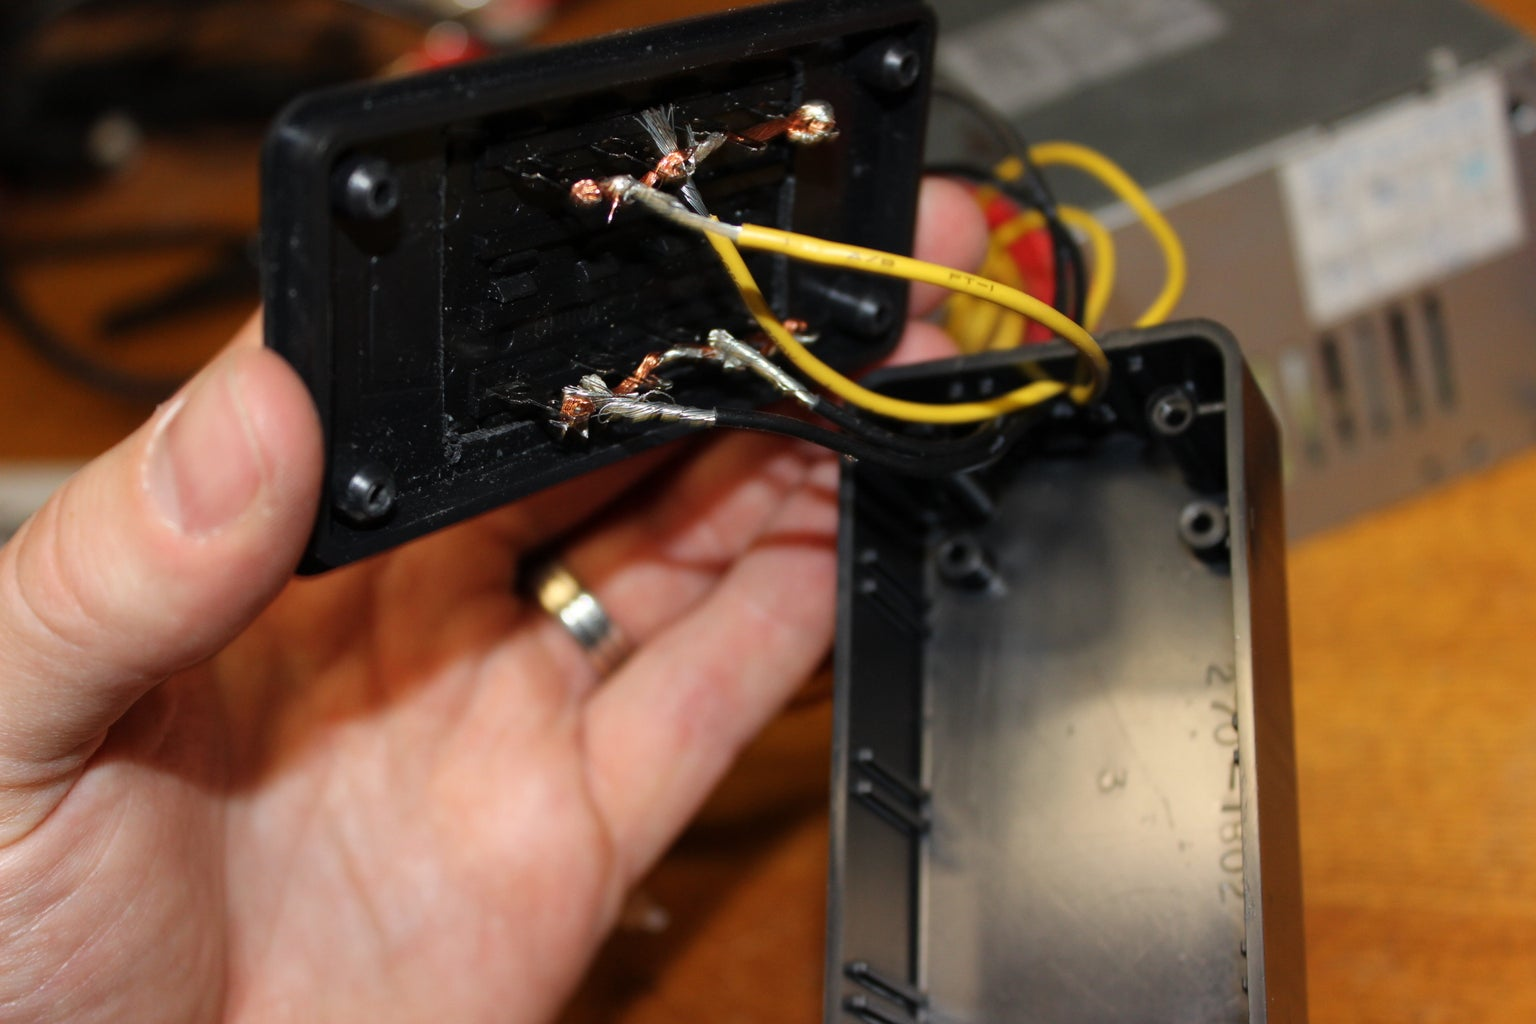 Wiring and Soldering the Connections to the Power Supply